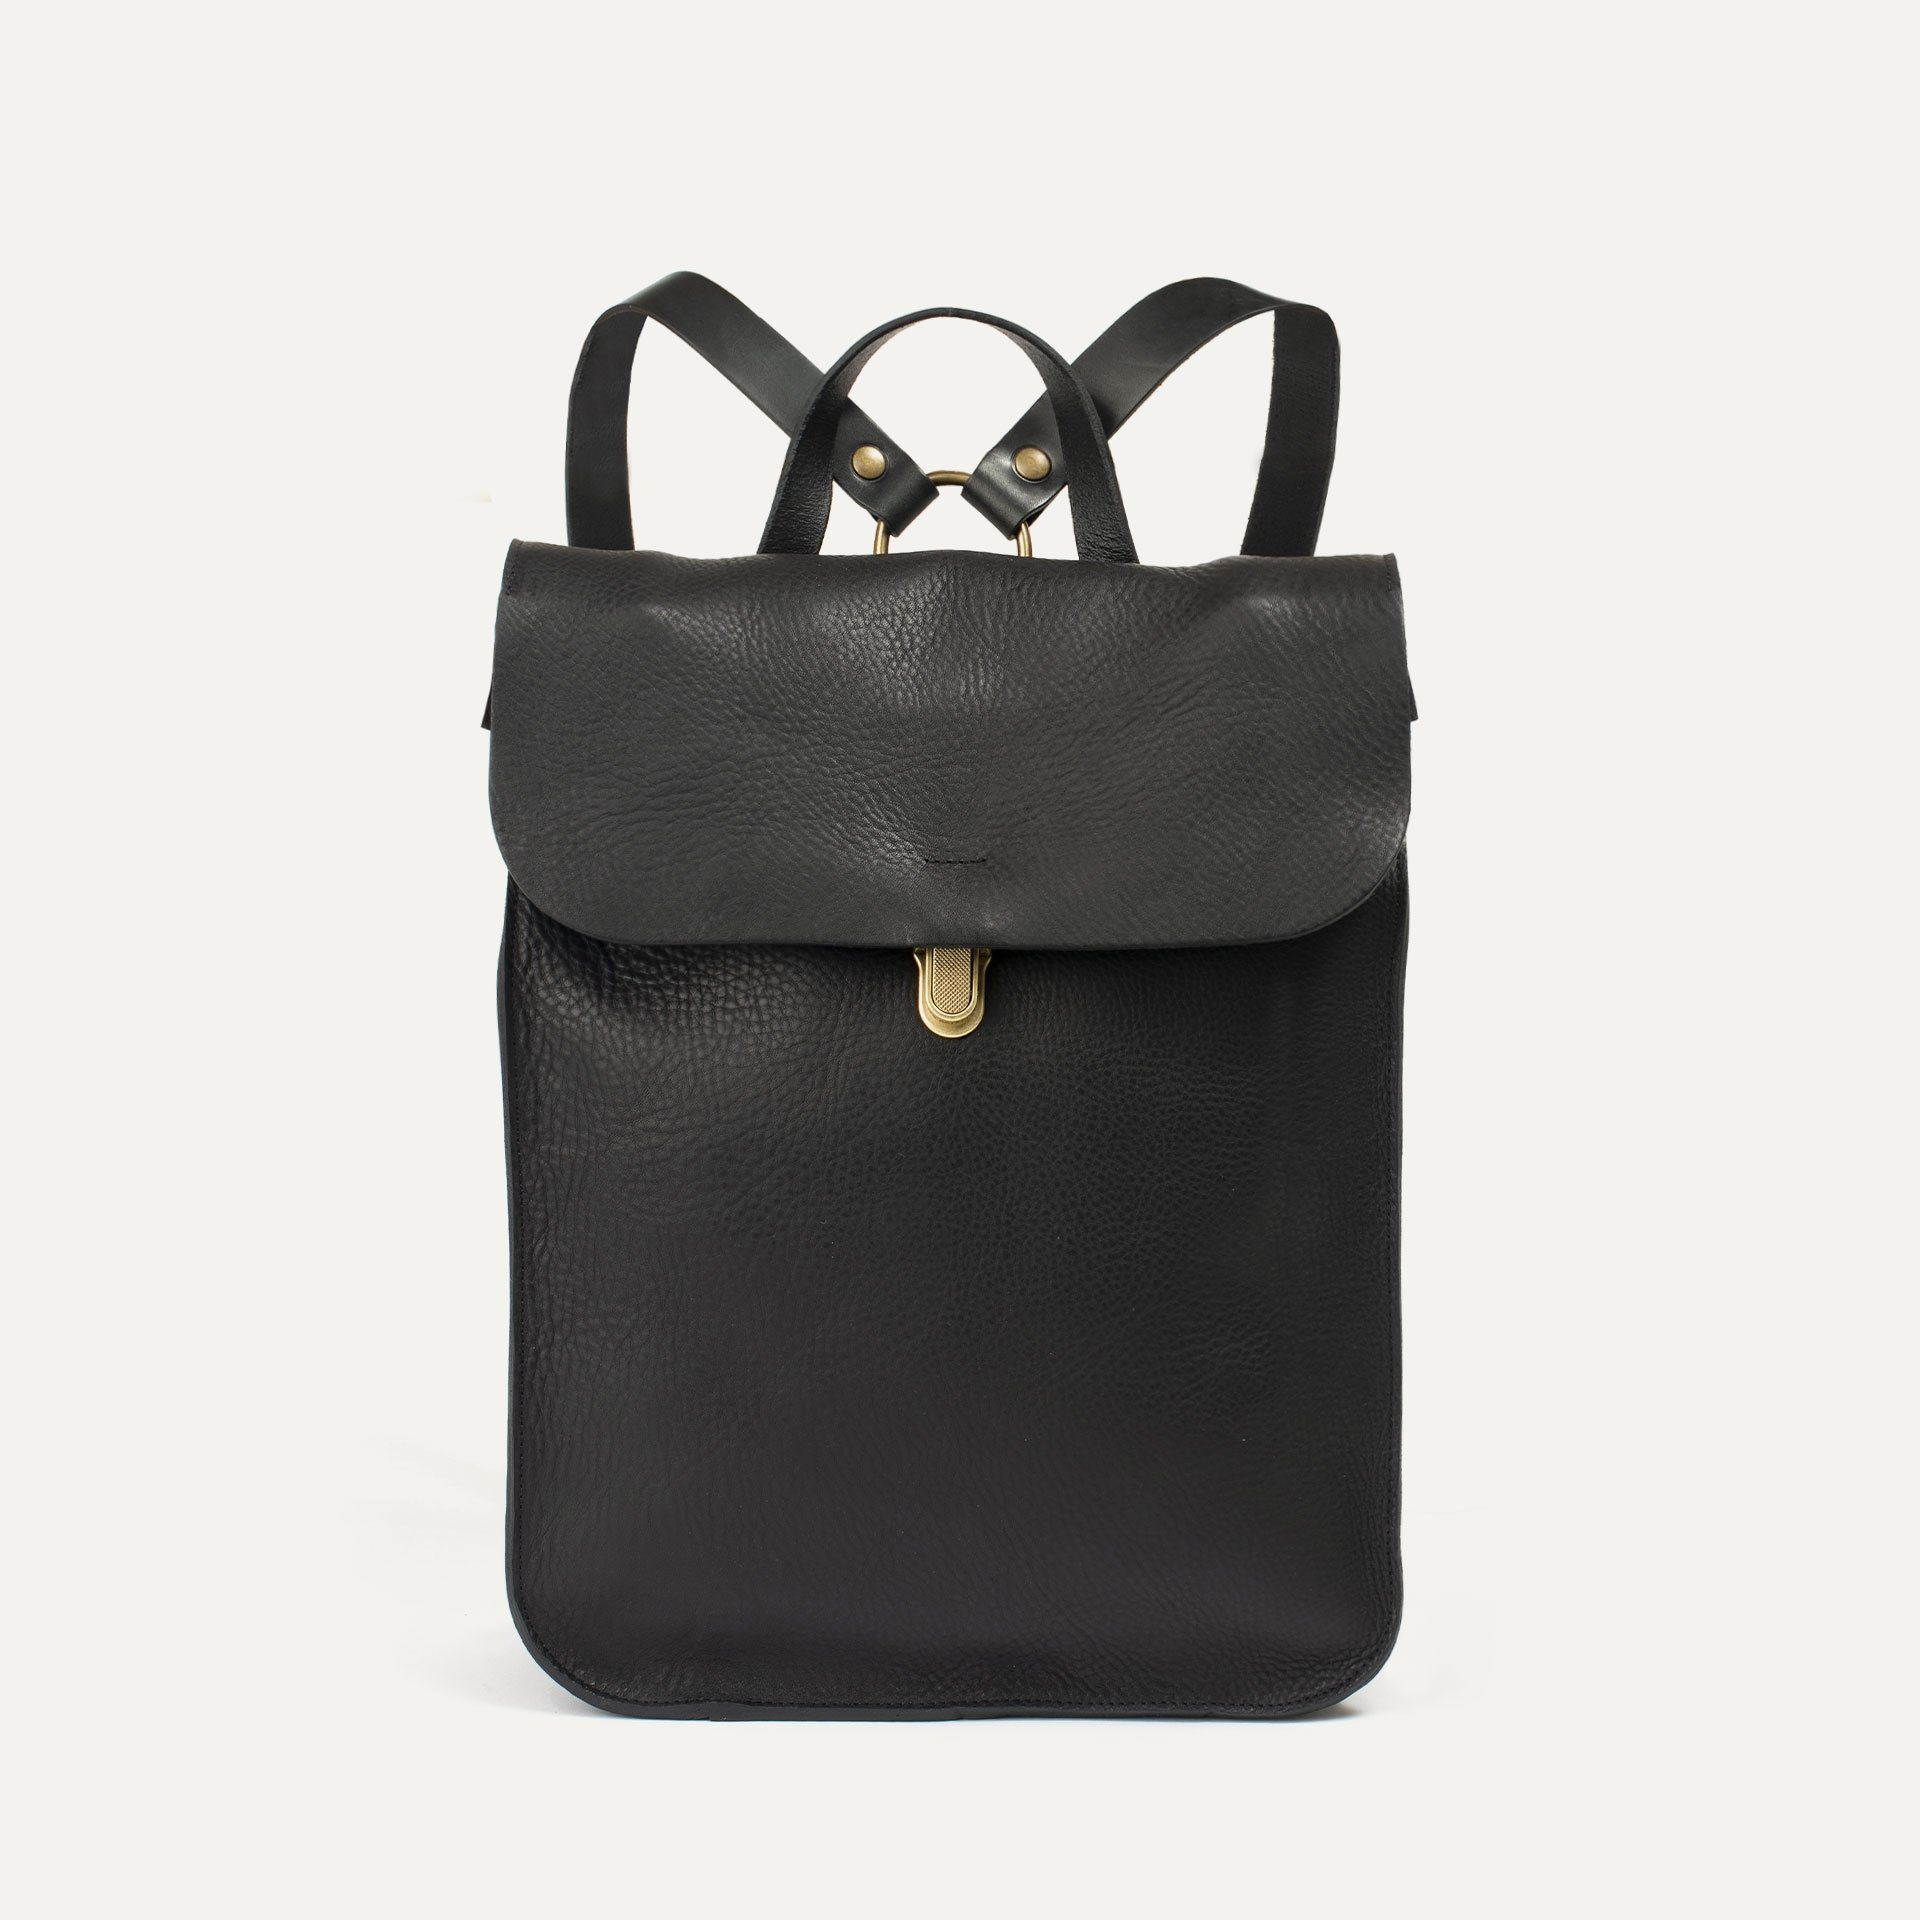 Puncho leather backpack - Black / E Pure (image n°1)